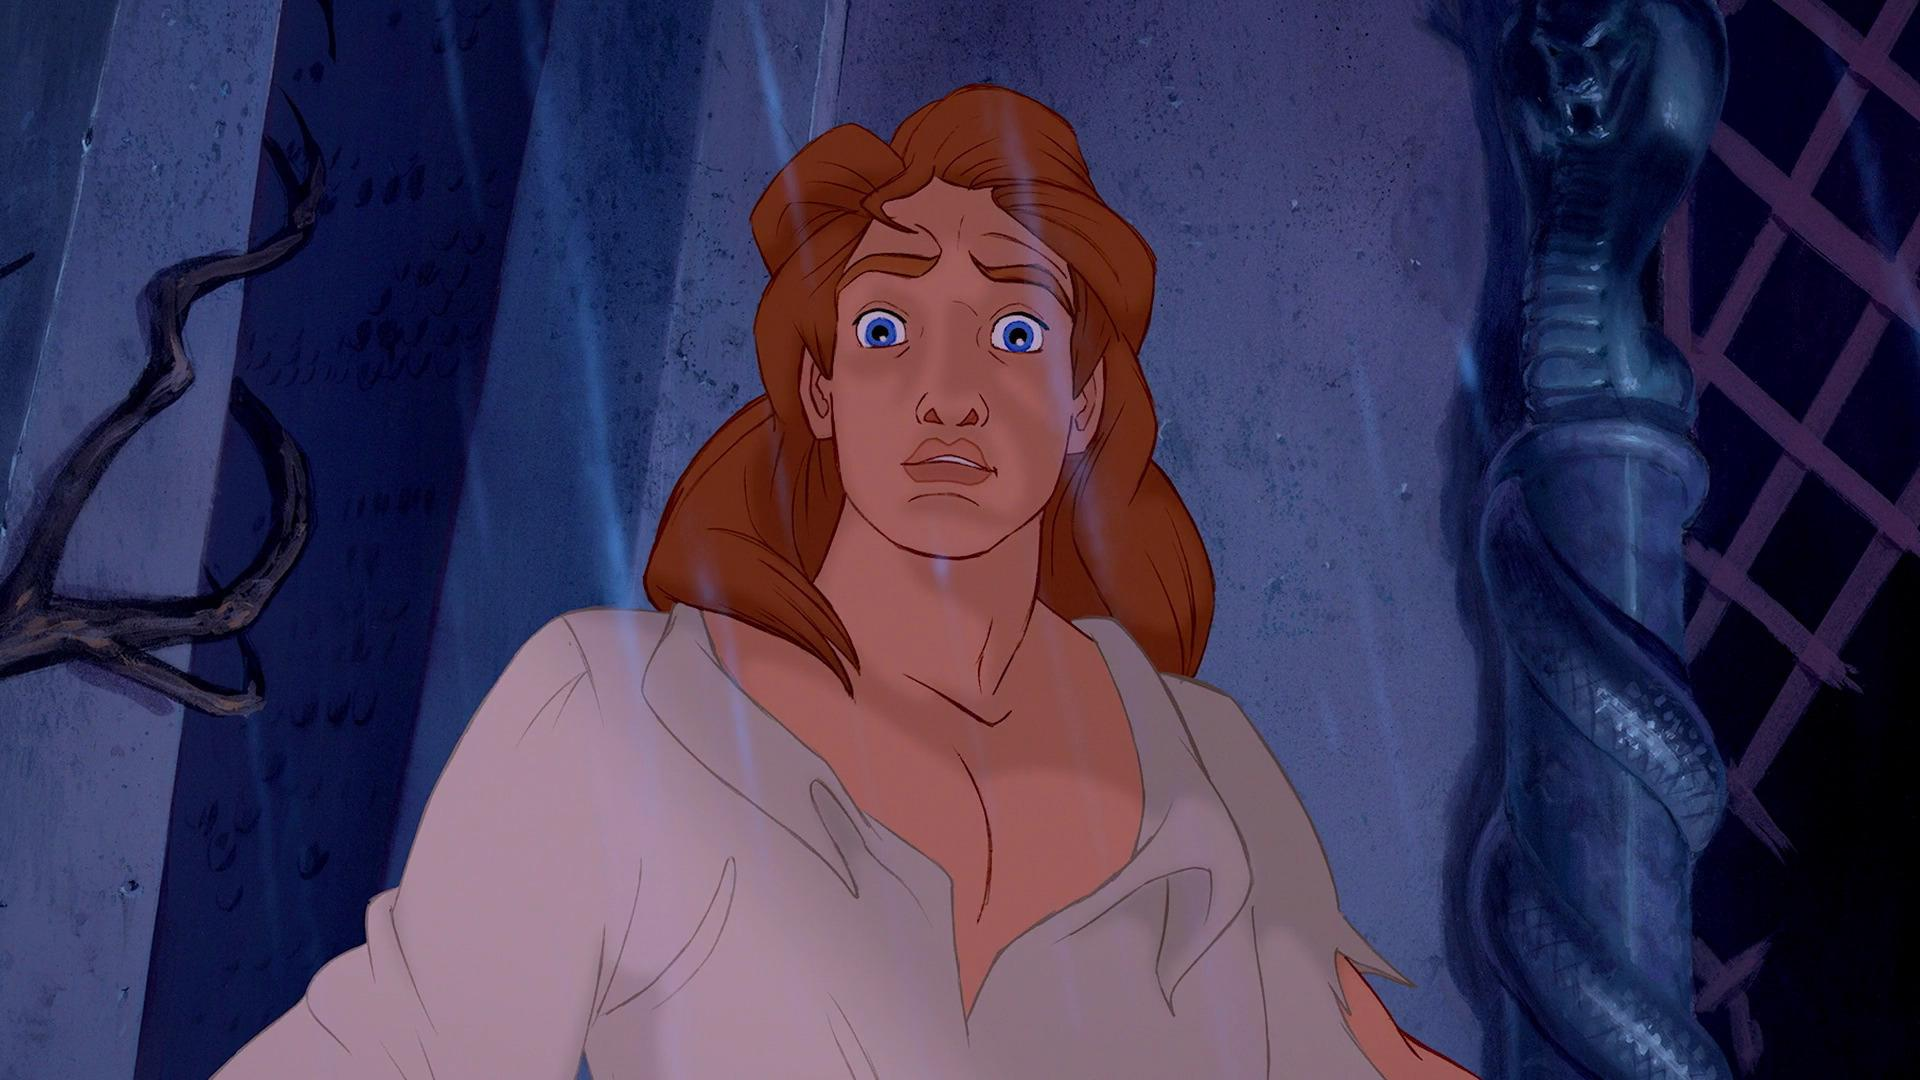 prince adam beast Disney beauty and the hd hình nền 1643884